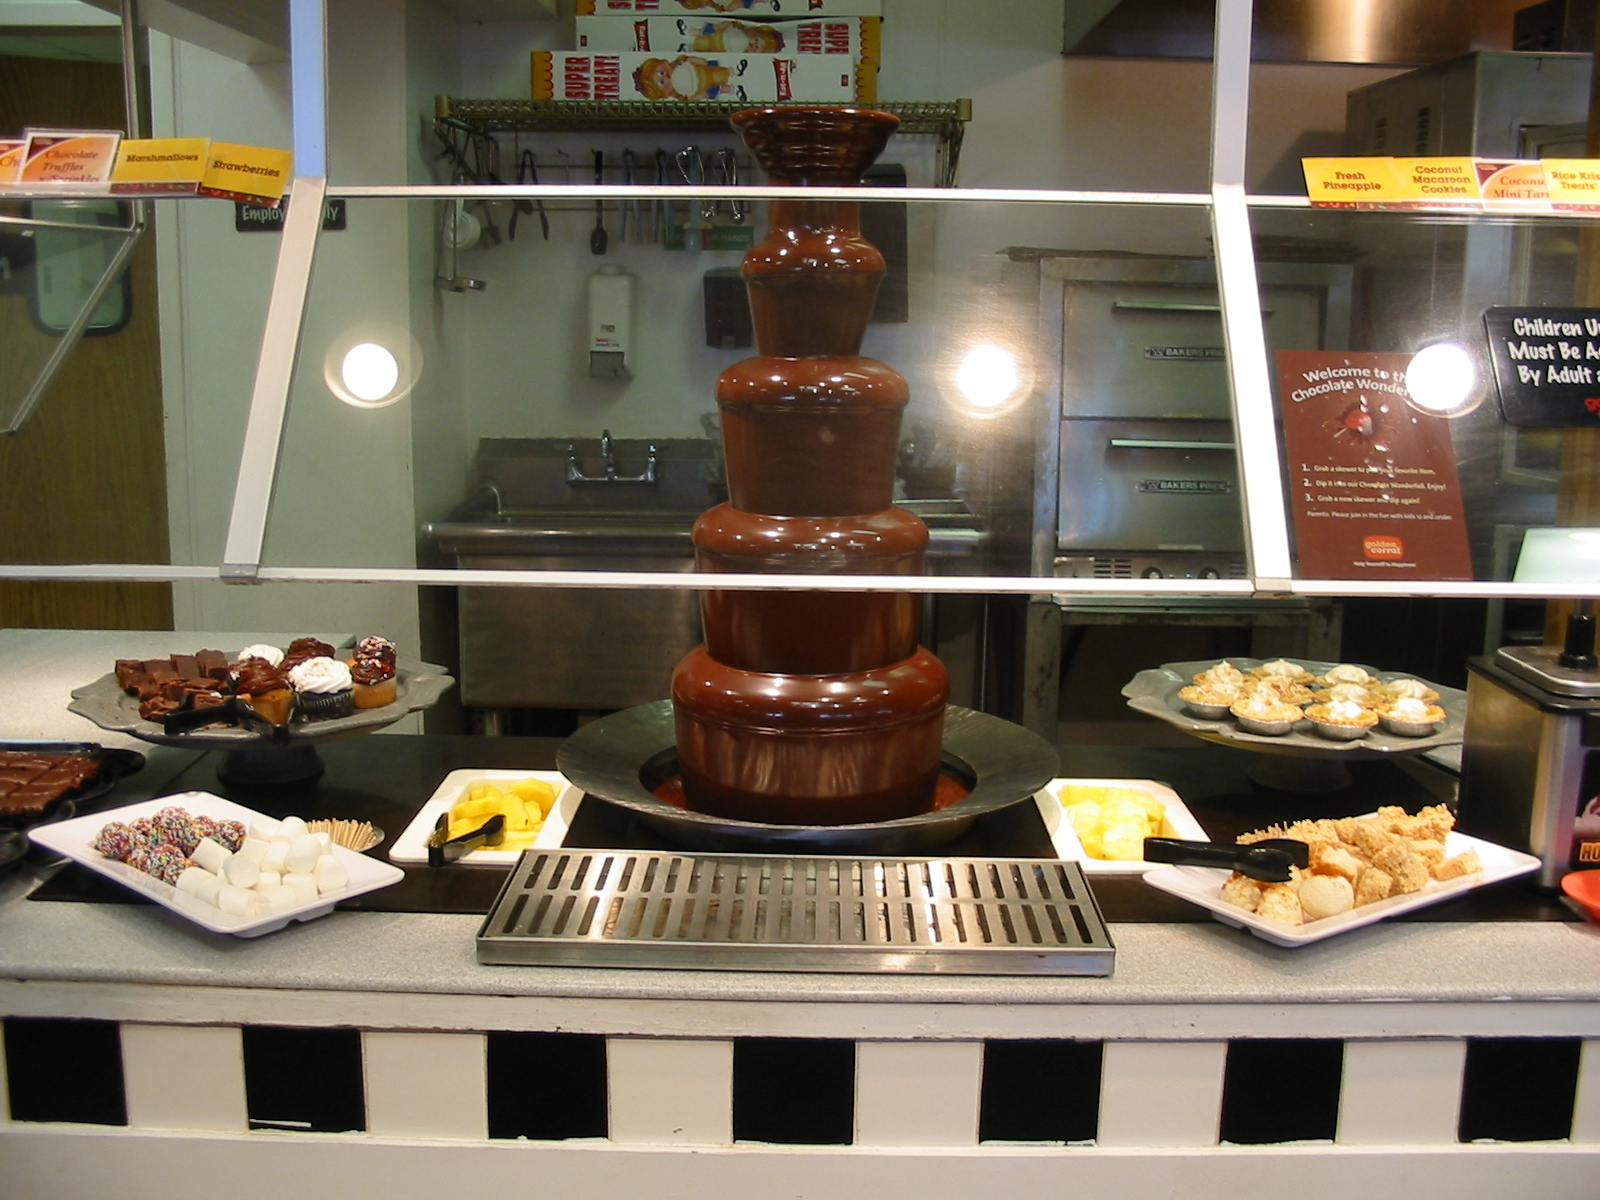 The Chocolate Cult: Chocolate Fountain at Golden Corral